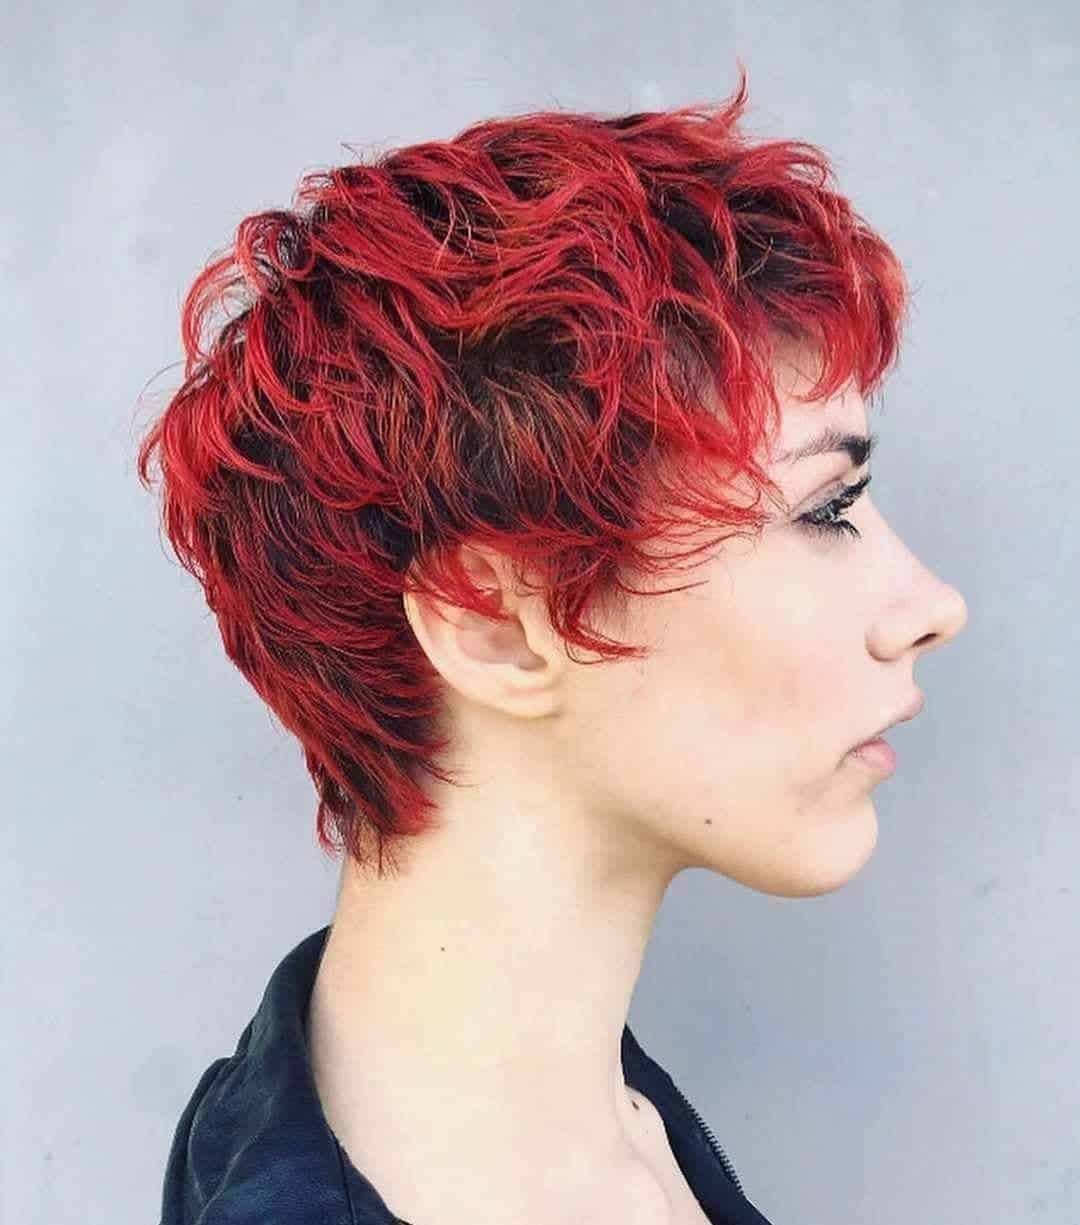 red curly pixie cut